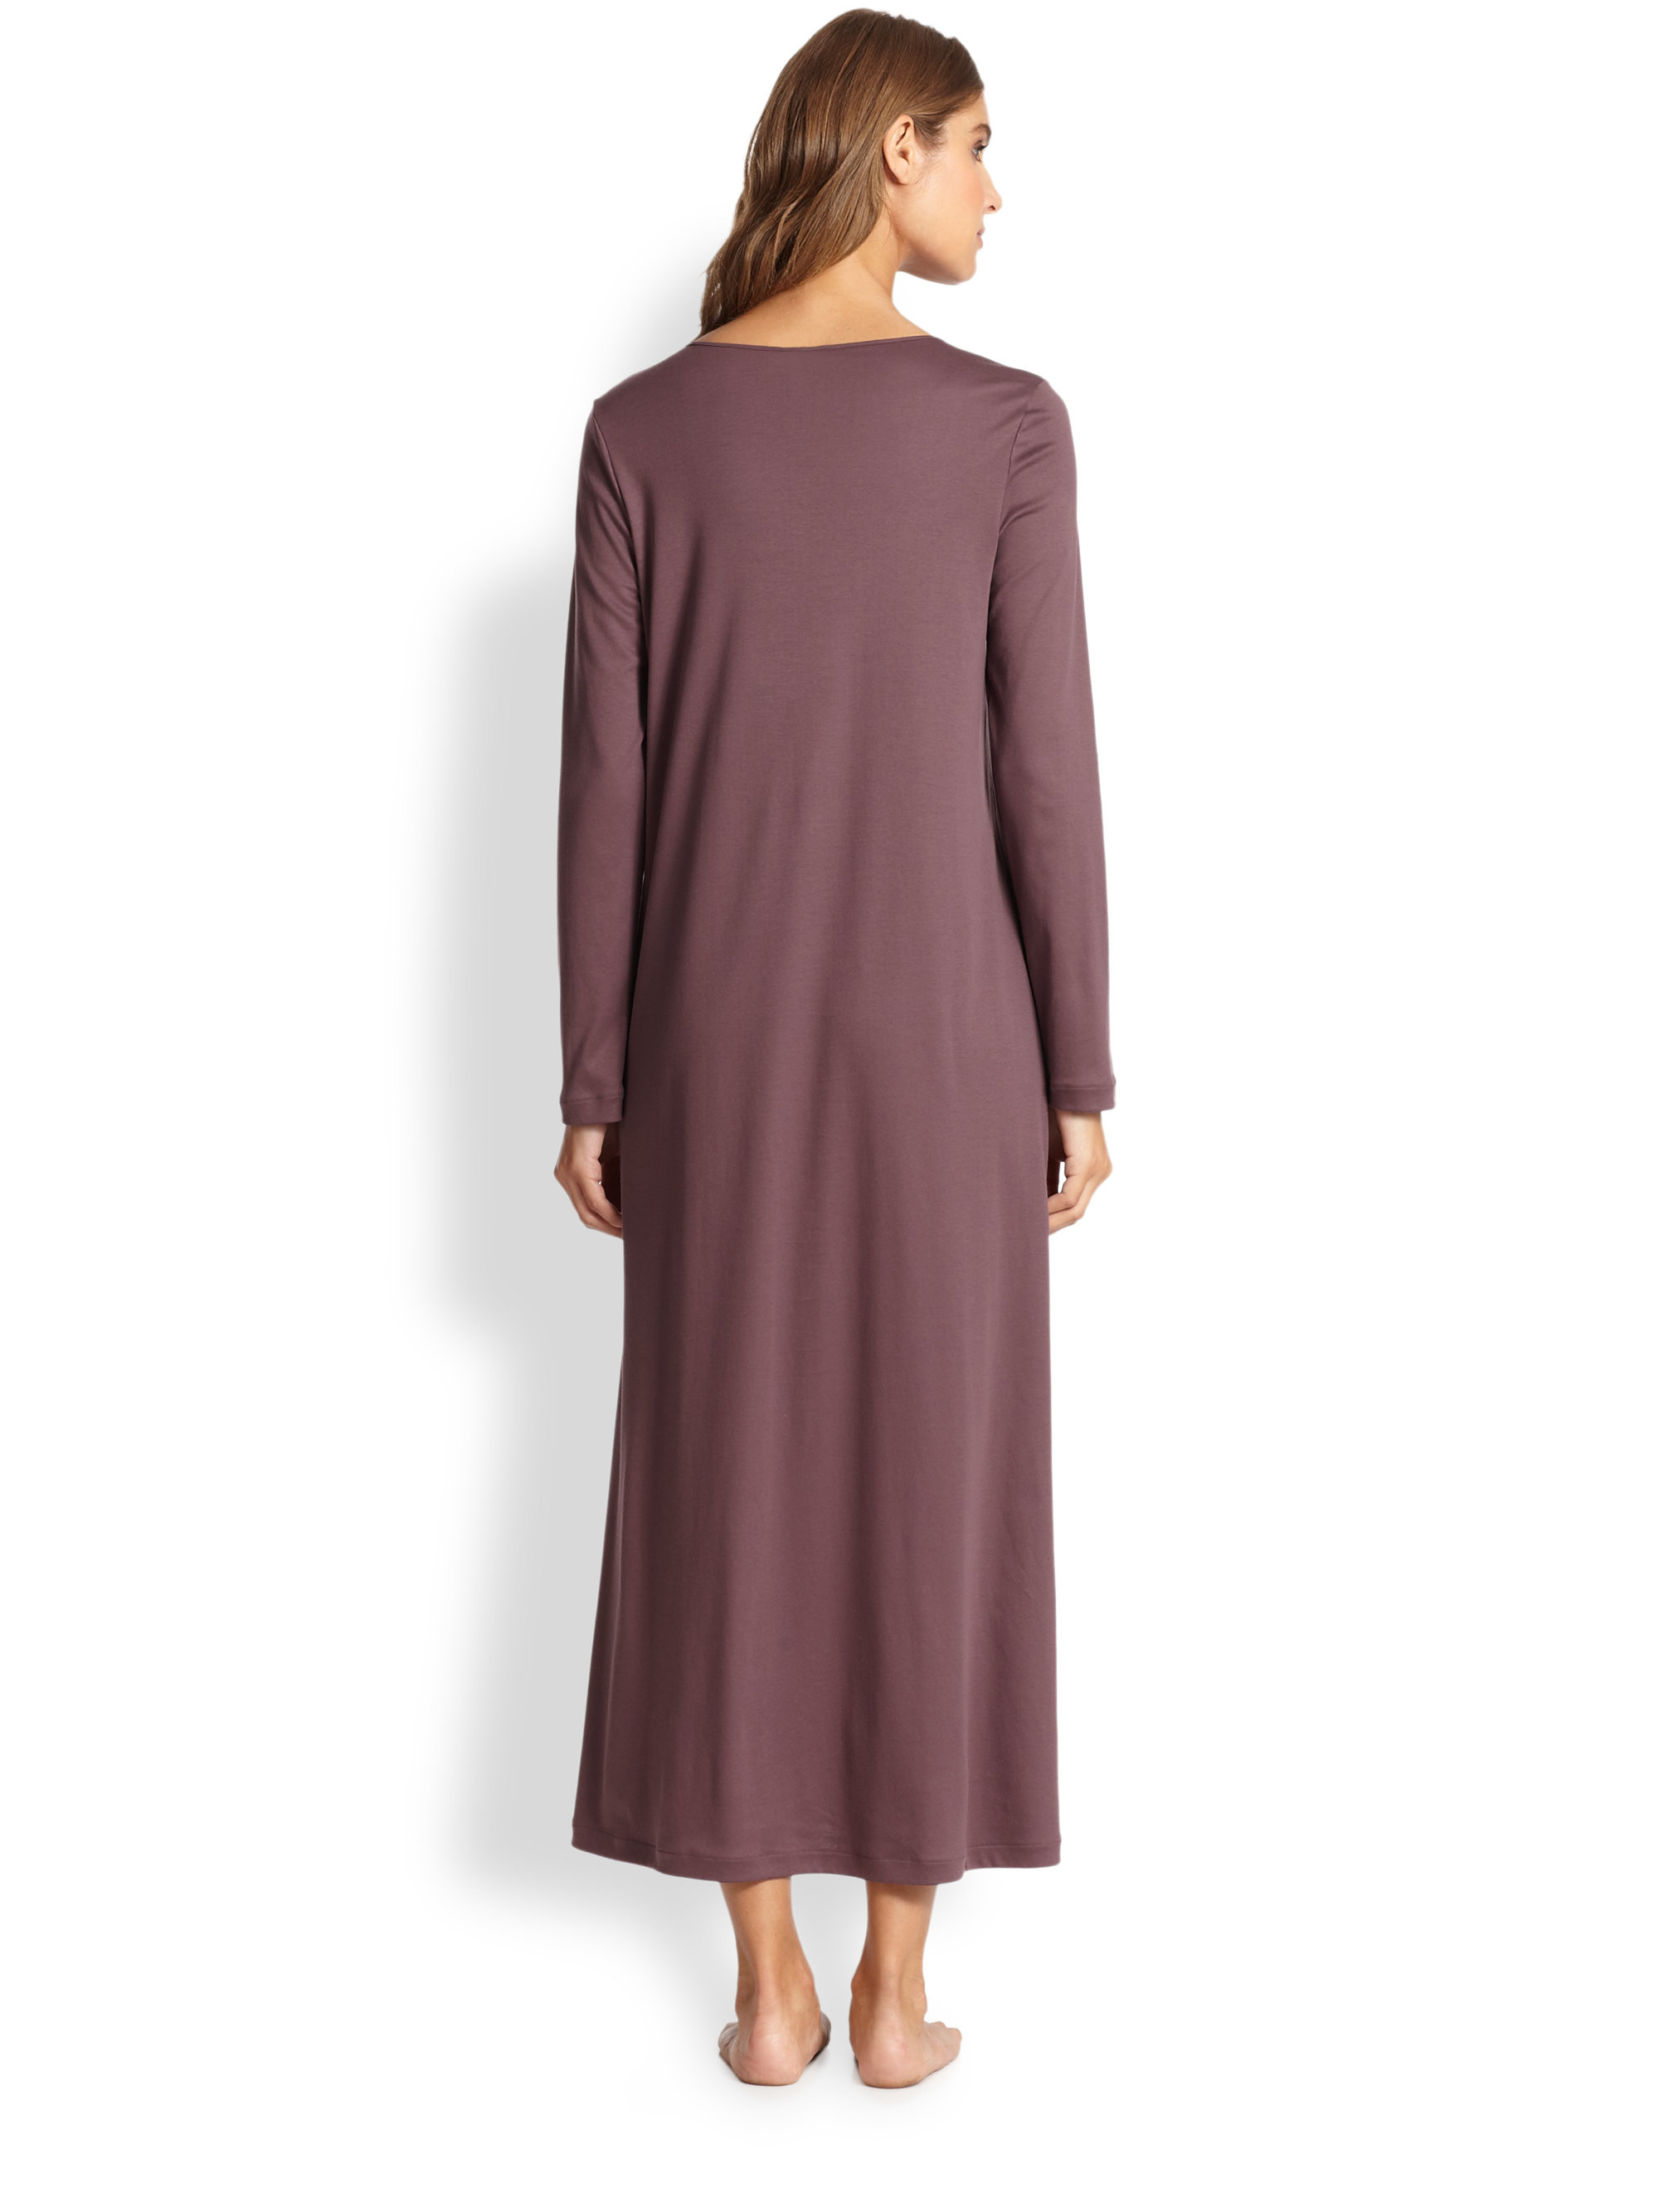 Cotton Knit Awesome Lyst Hanro Queen Long Cotton Knit Gown In Purple Of Marvelous 41 Ideas Cotton Knit